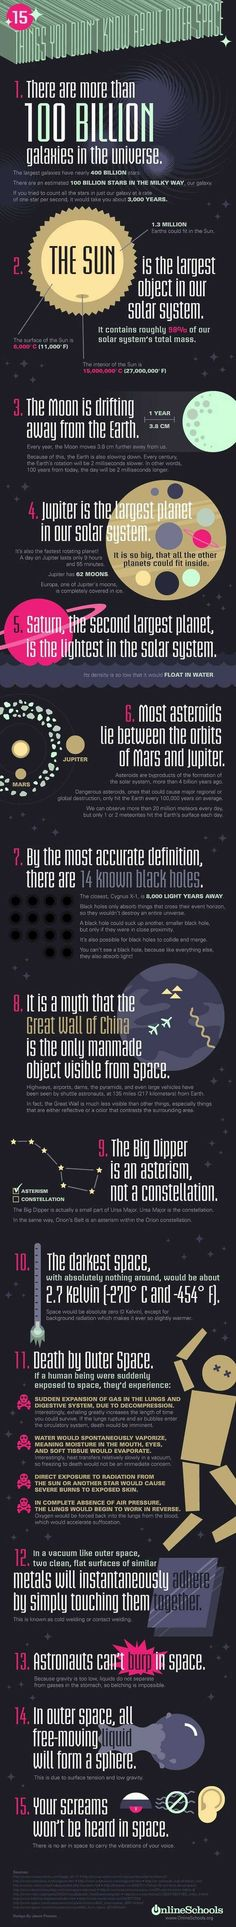 15 Things You May not Have Known about Outer Space [Infographic]